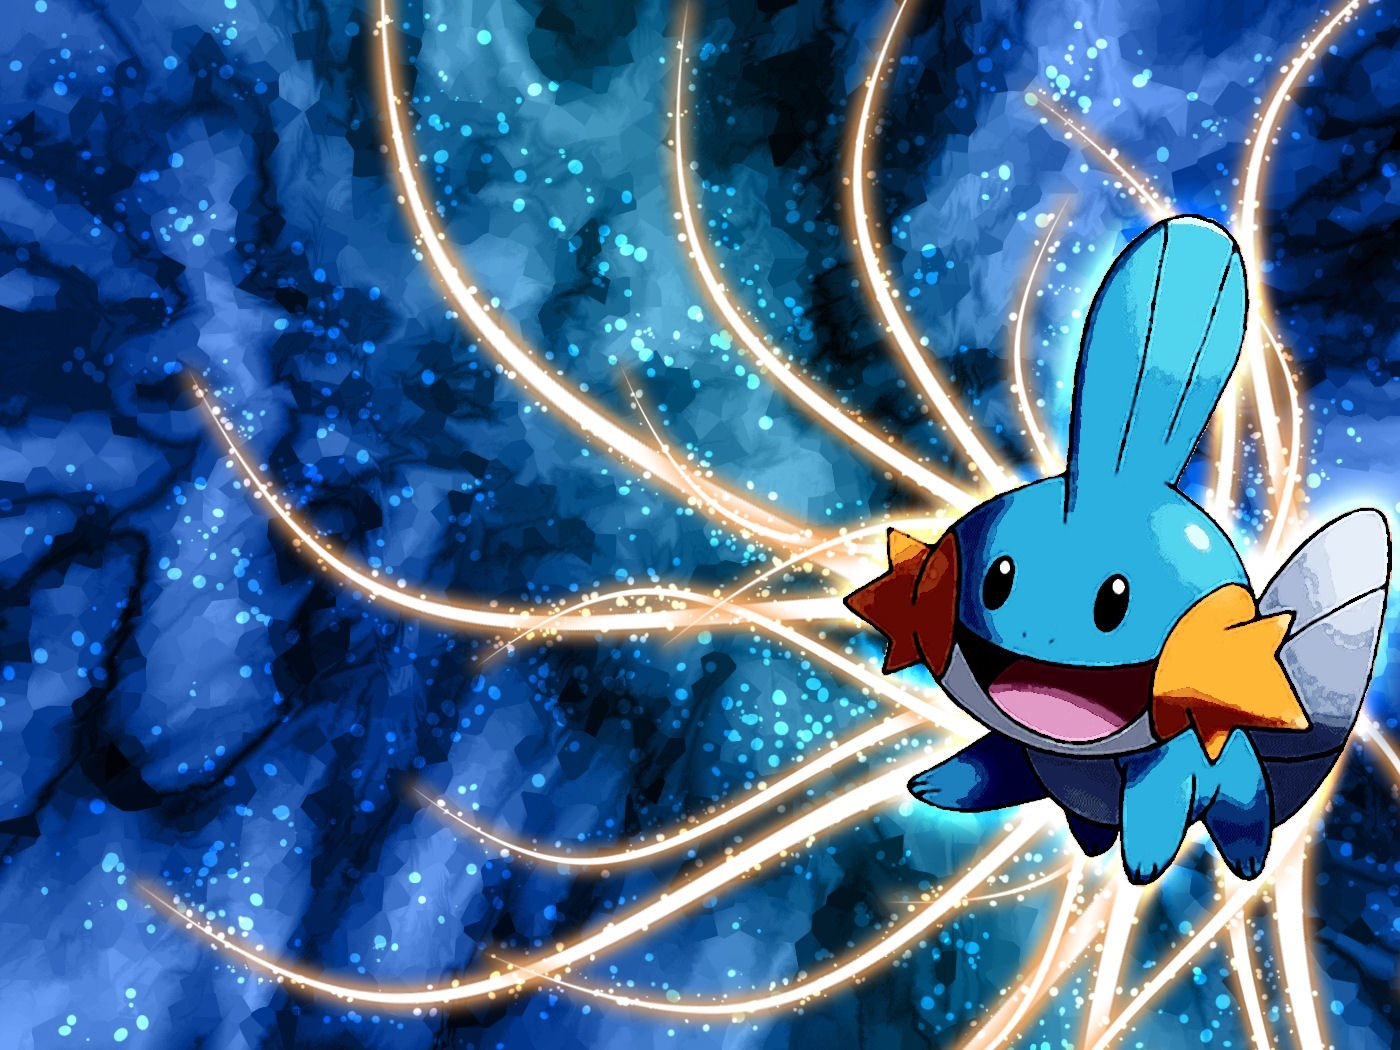 Video Game - Pokémon  Mudkip (Pokémon) Wallpaper